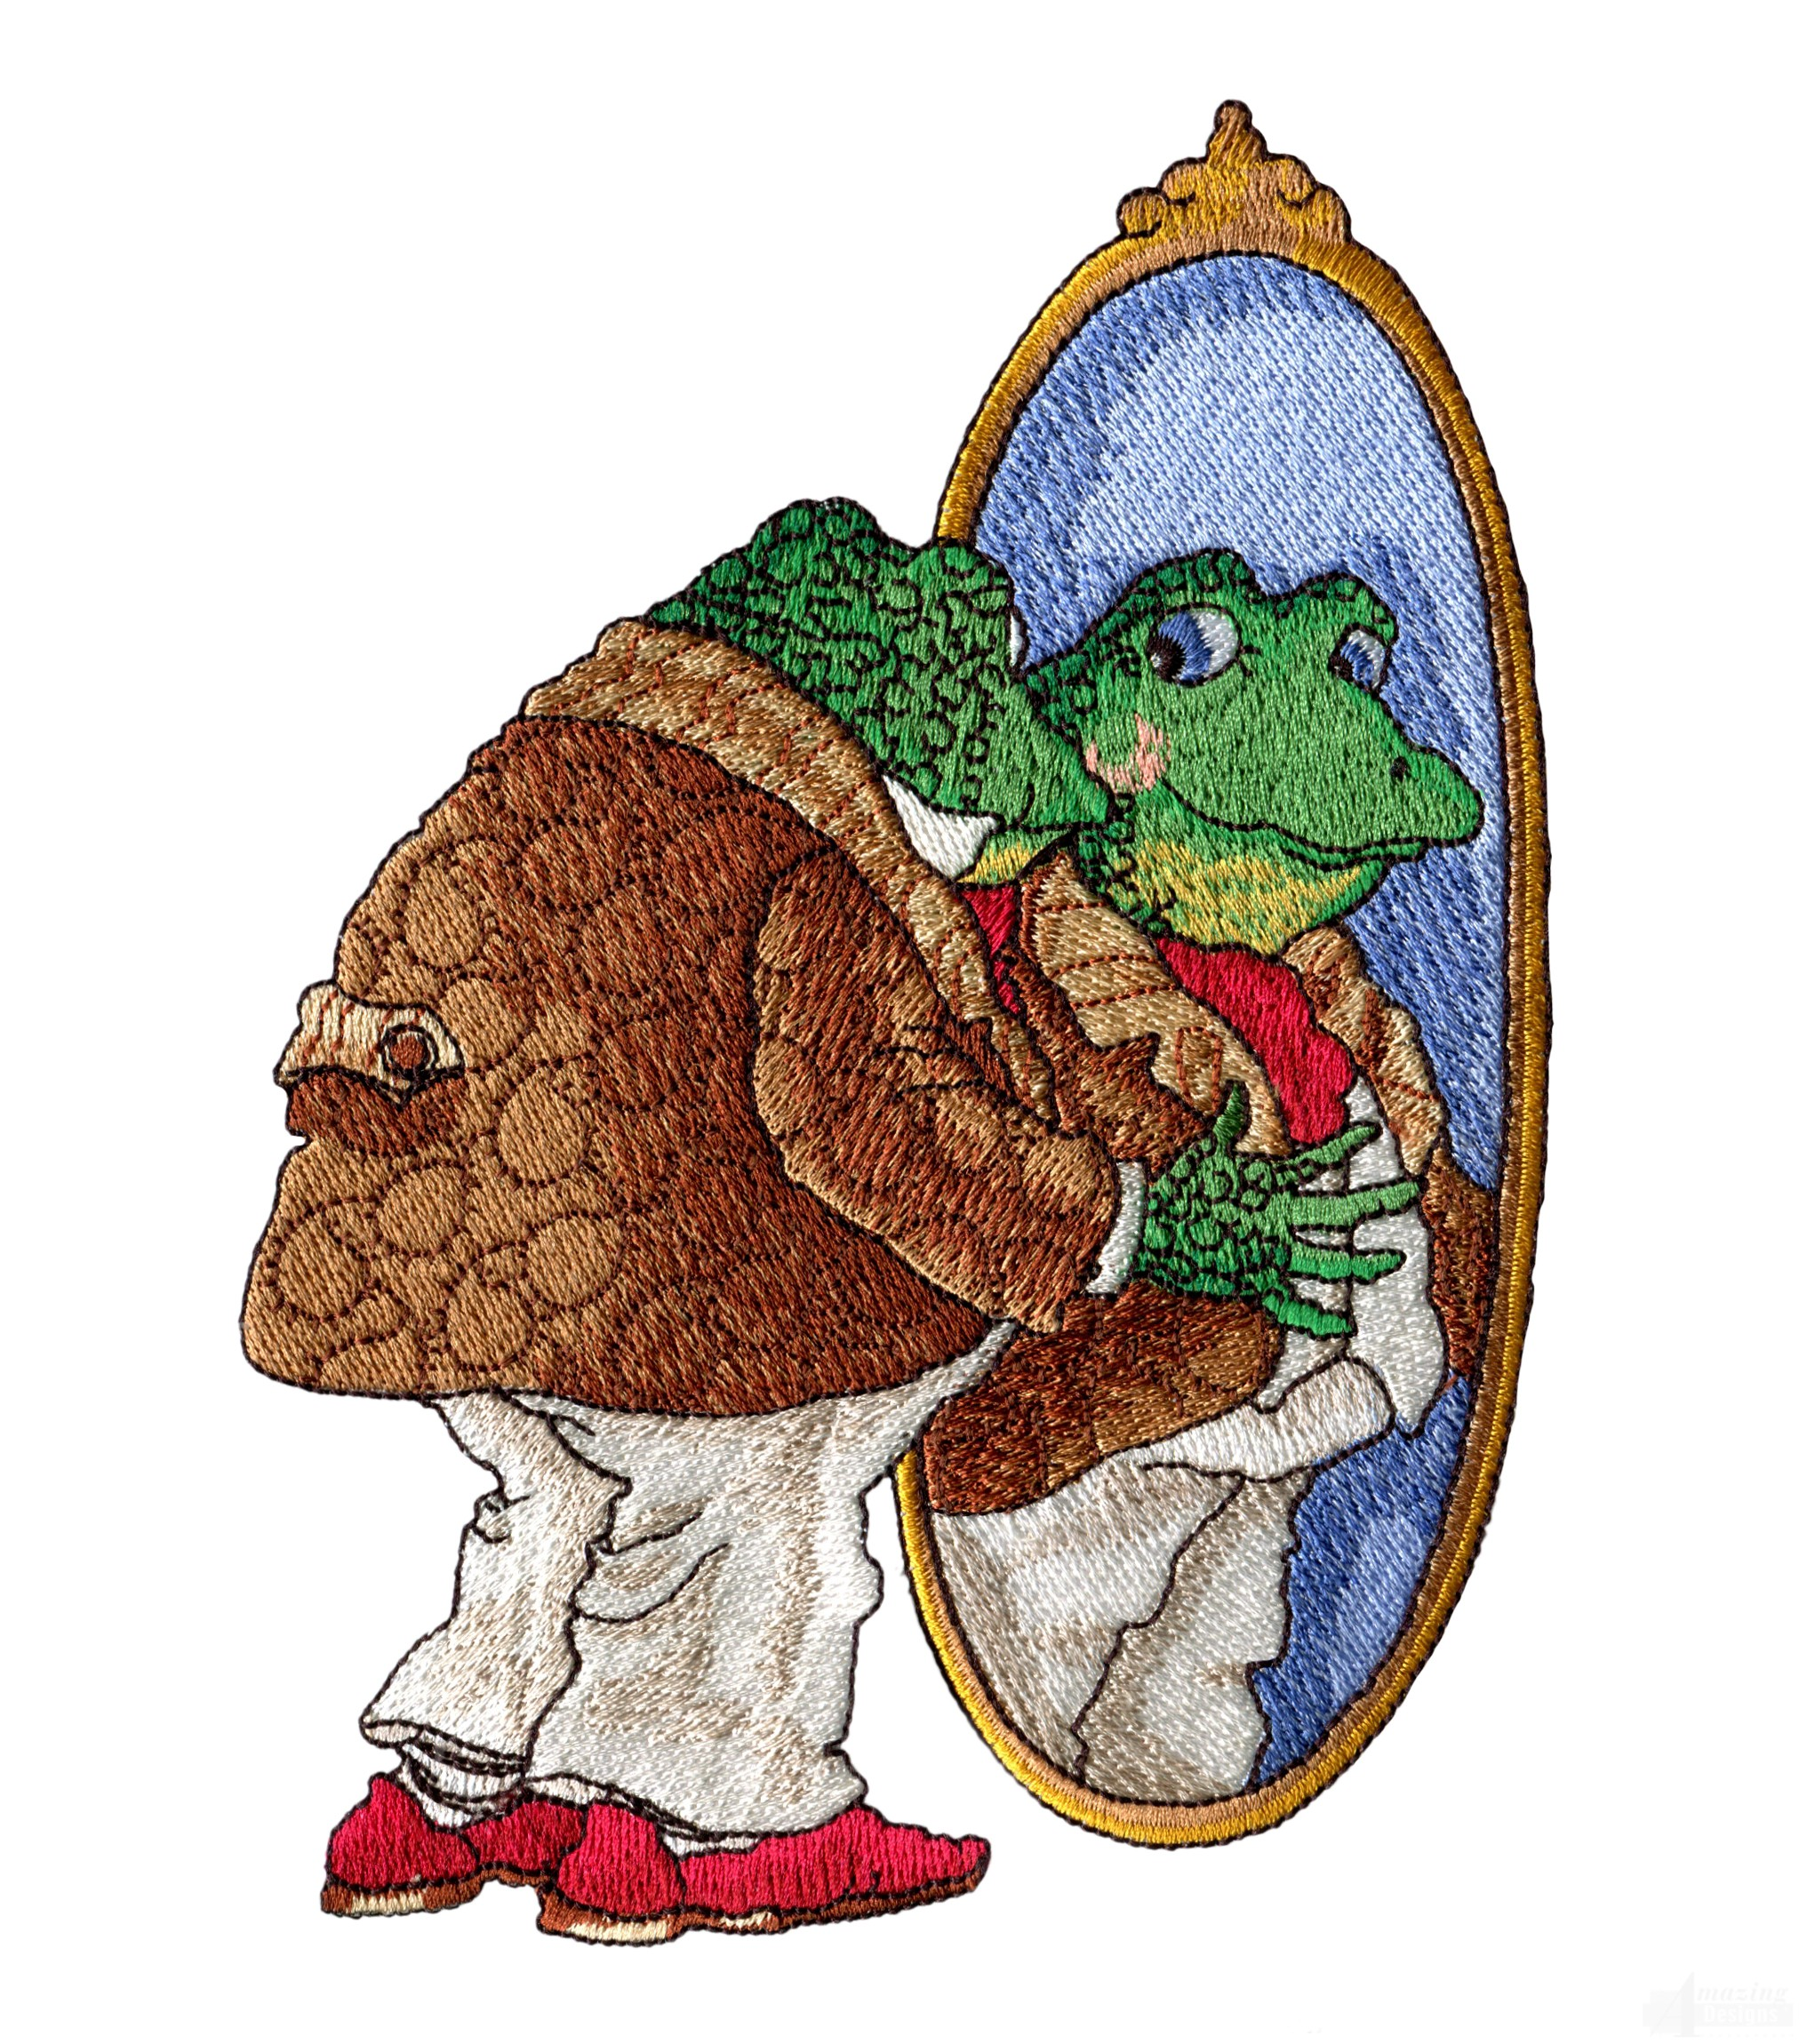 Frog in mirror embroidery design